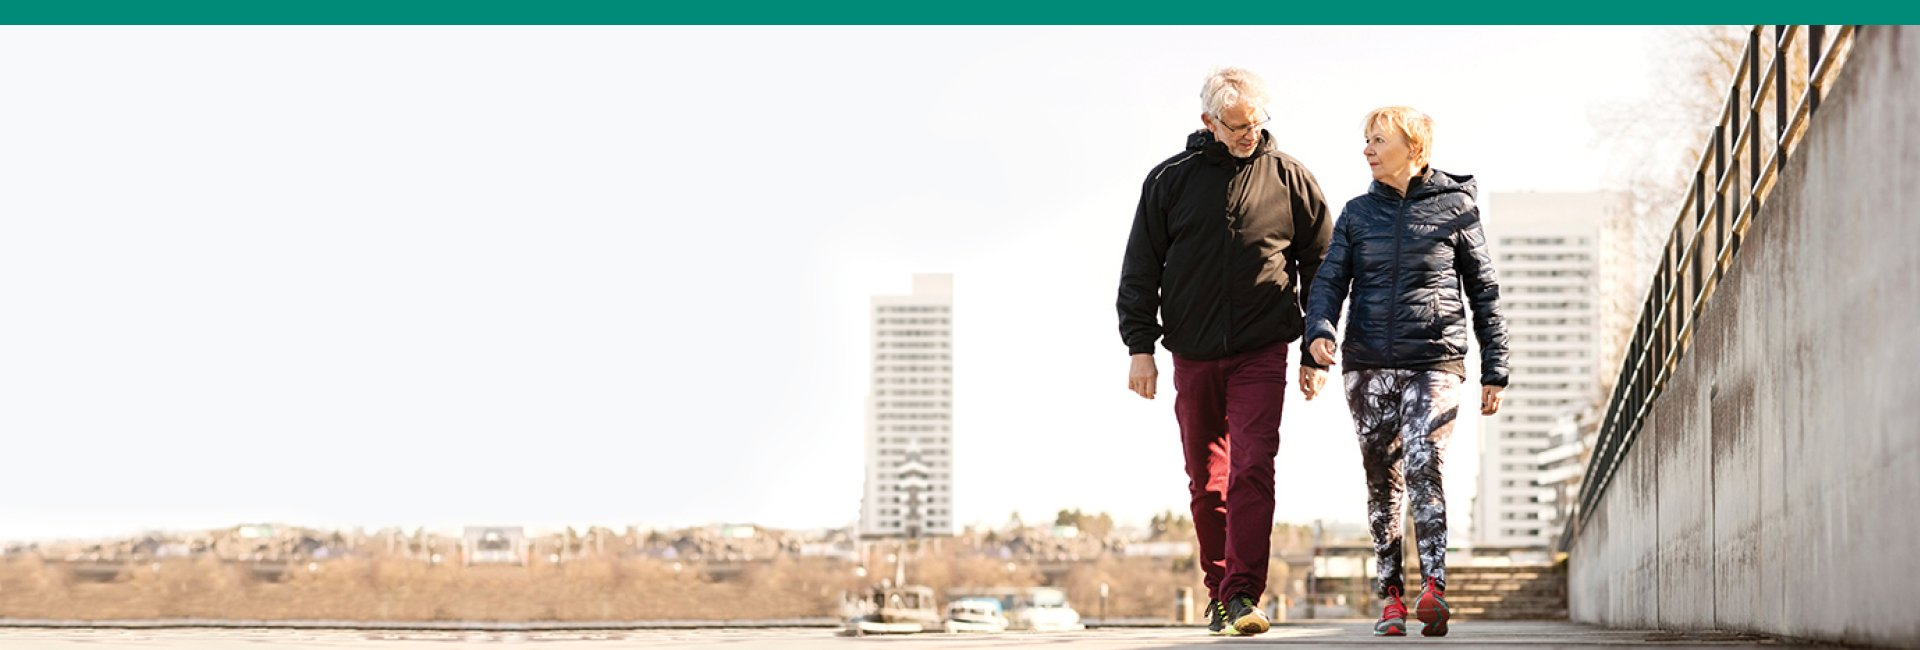 Medical Weight Management/Diet Lecture: Two people walking & holding hands with green/teal border